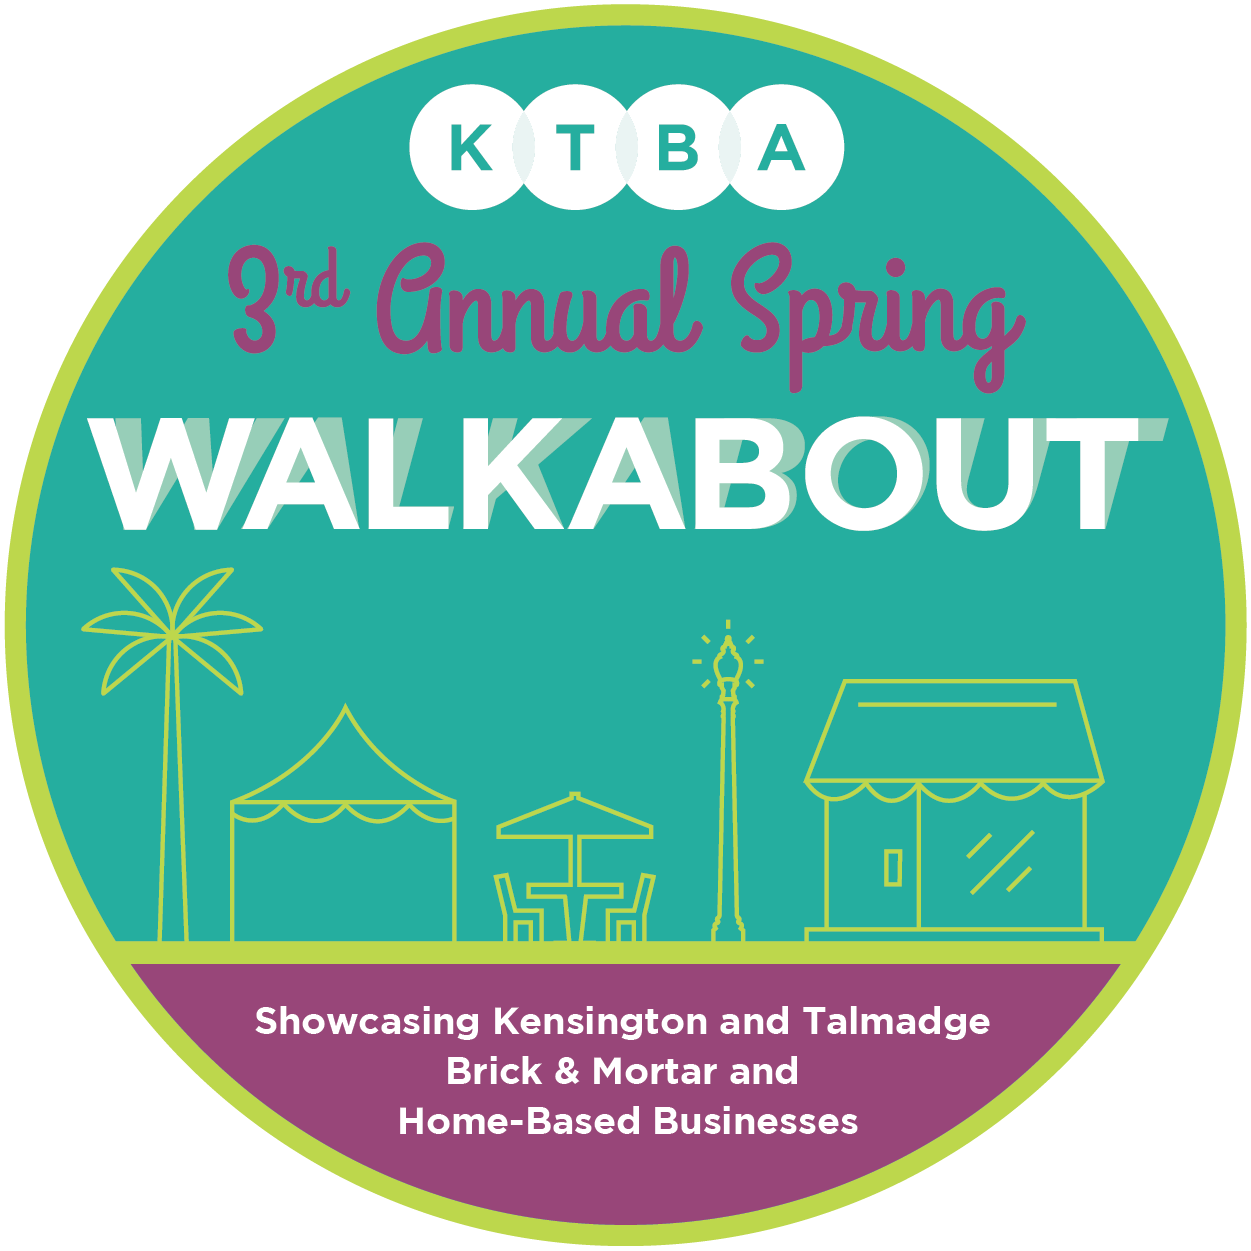 walkabout 2018